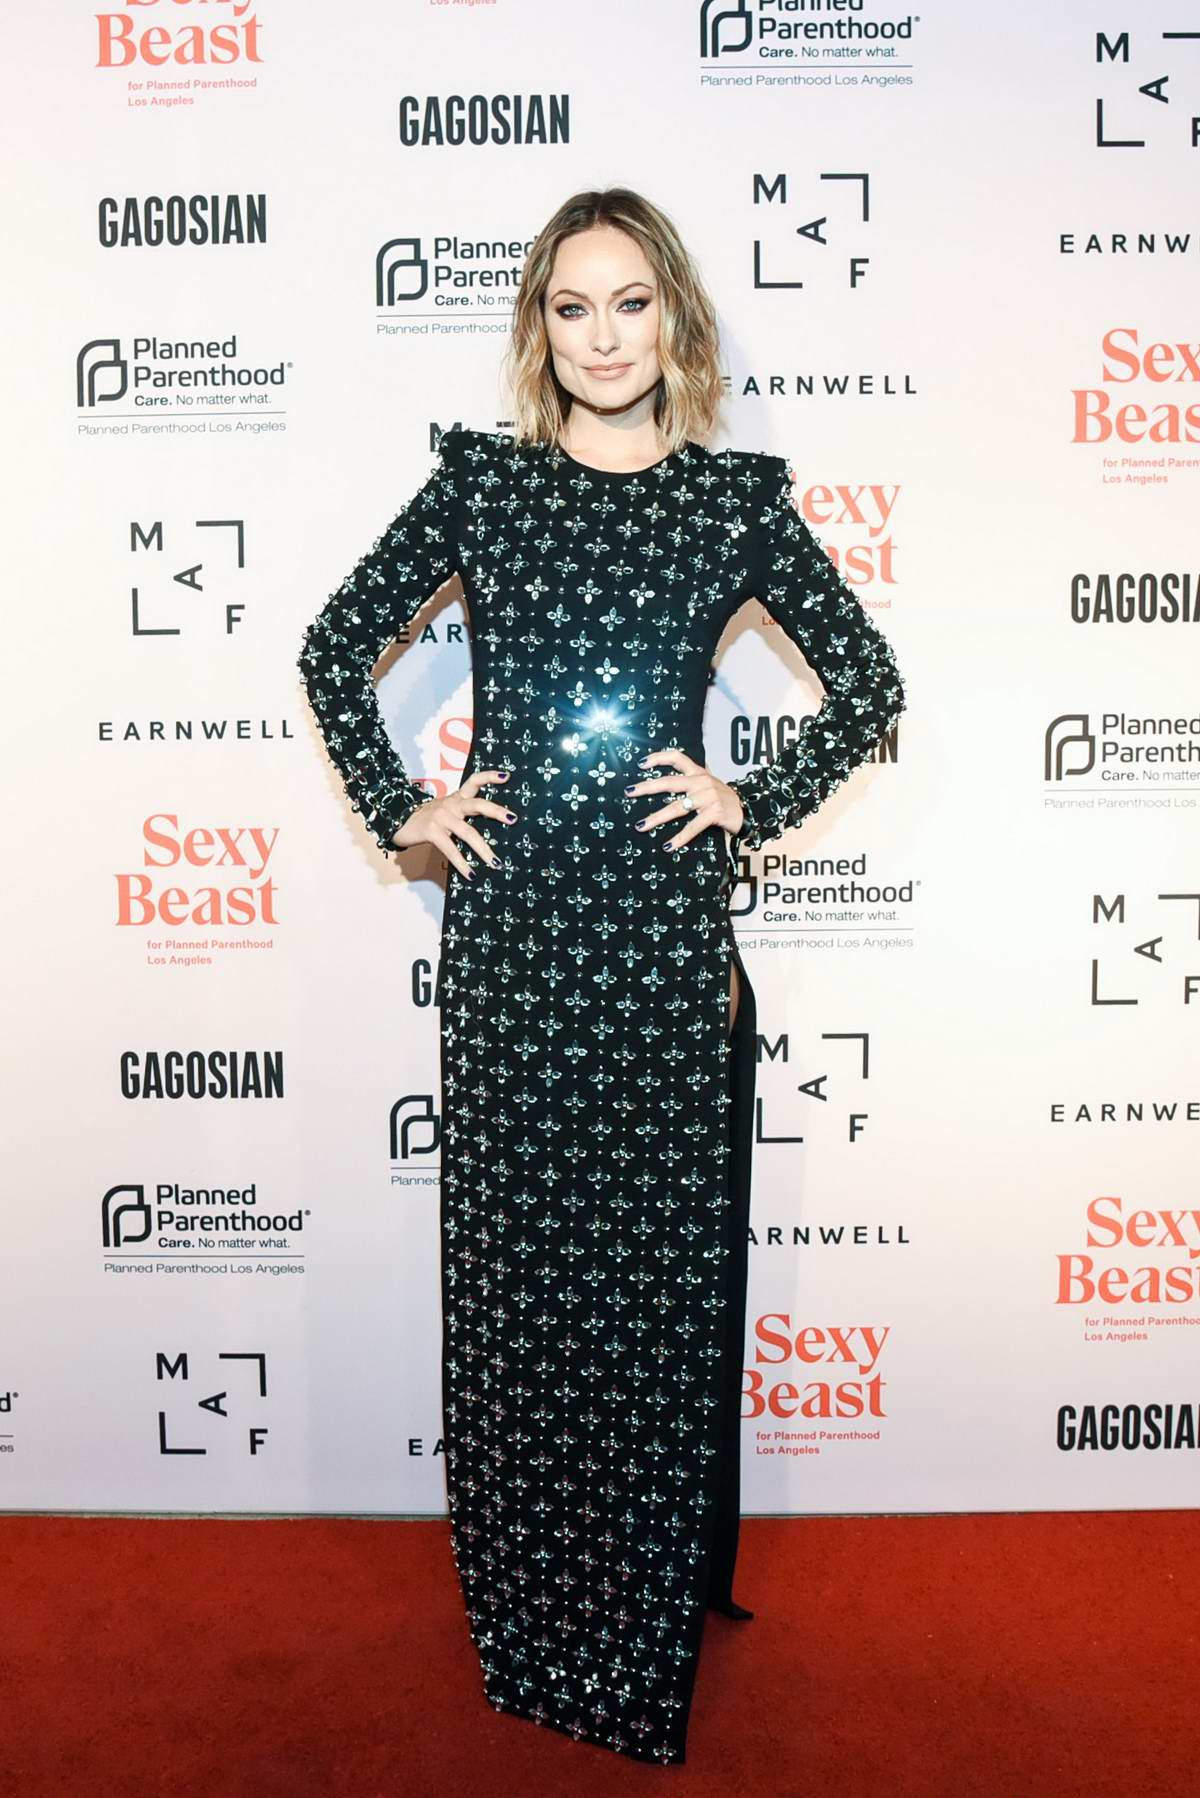 Olivia Wilde attends The Sexy Beast Gala - A Benefit For Planned Parenthood LA in Los Angeles